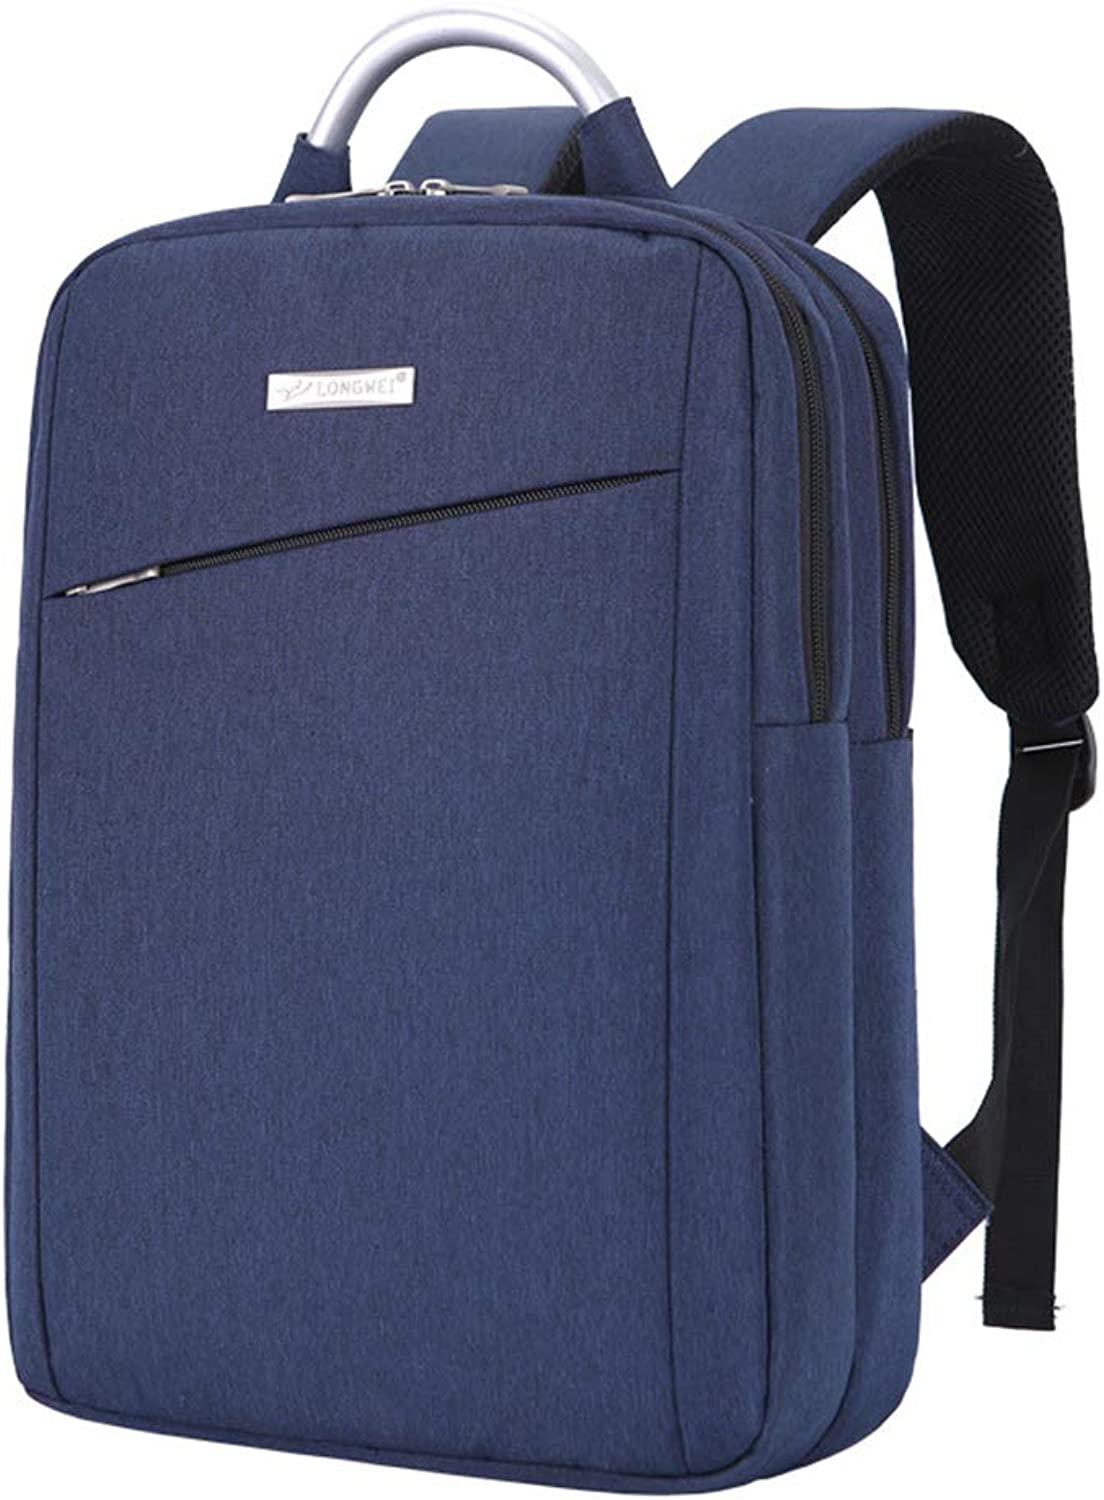 Oxford Cloth Computer Backpack Unisex, Business Casual Travel Backpack Solid color